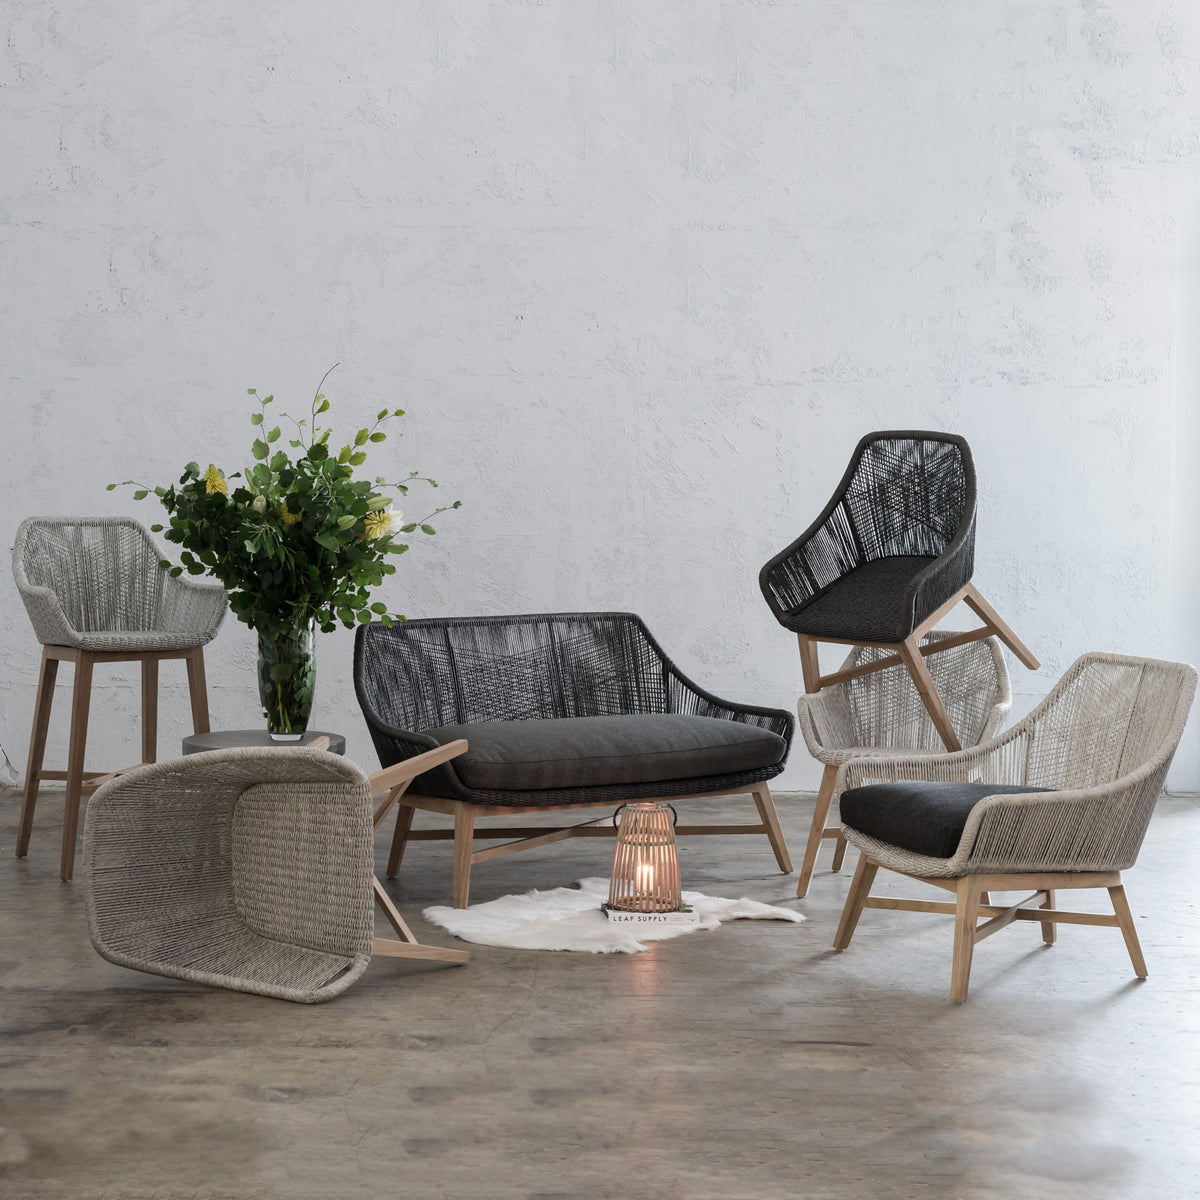 INIZIA OUTDOOR WOVEN LOUNGE CHAIR  |  ASH GREY  |  MODERN RATTAN